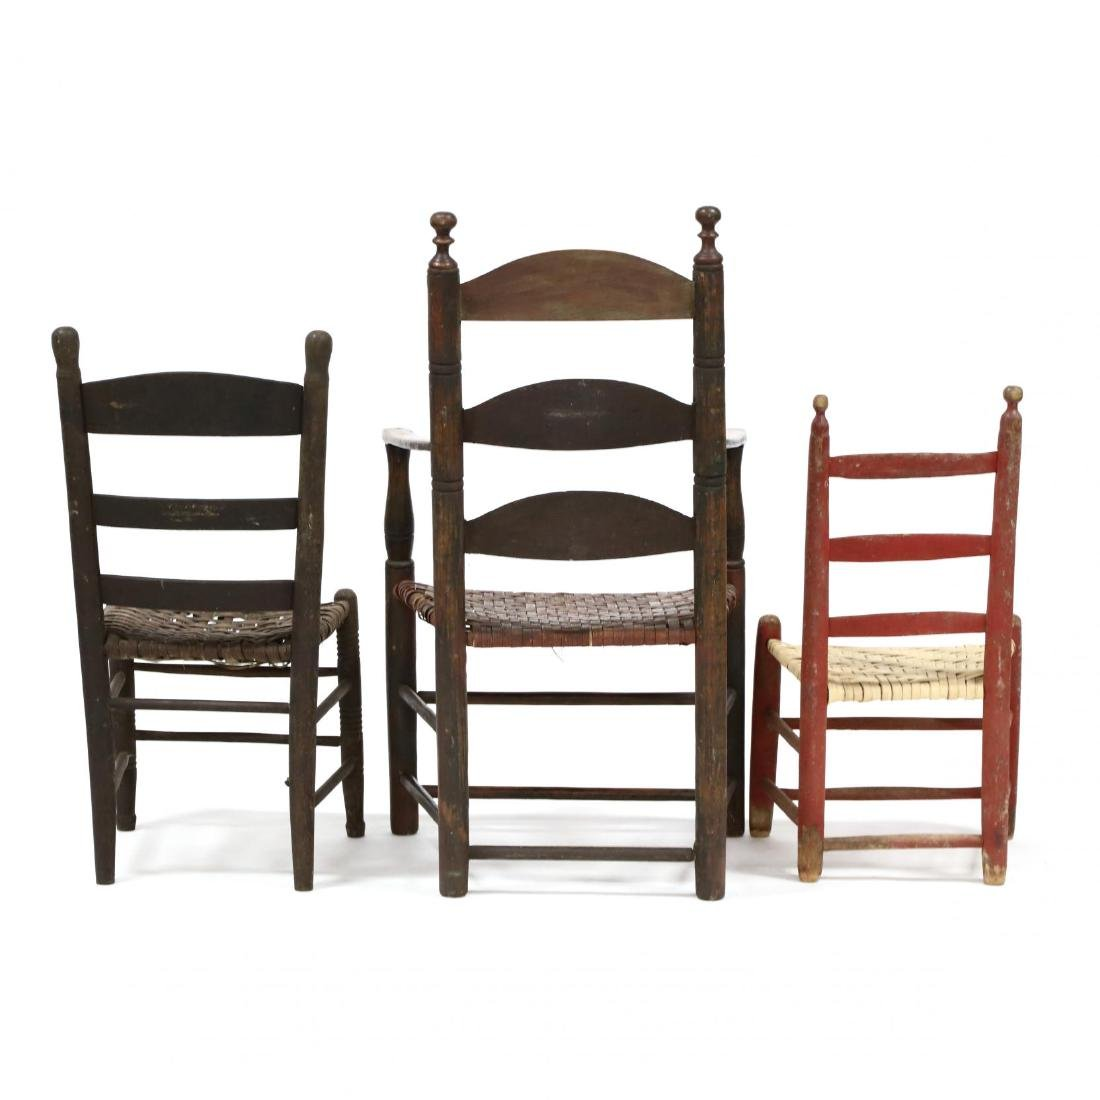 Three Antique American Ladderback Chairs - 4